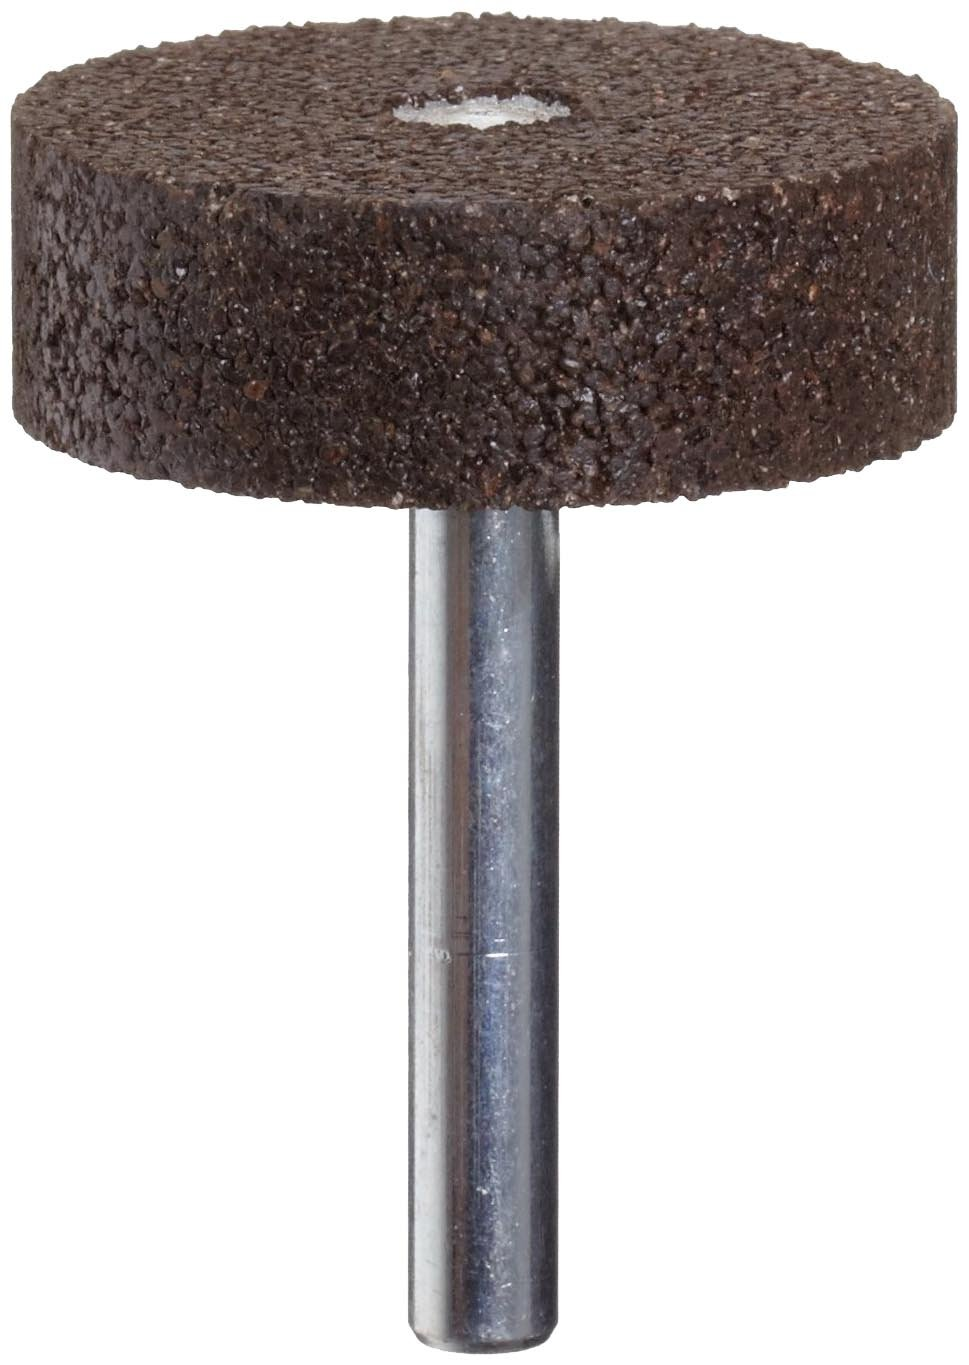 Aluminum Oxide Long Life Resin Mounted Point With 1//4 Shank Aluminum Oxide Long Life Resin Mounted Point With 1//4 Shank B003HKQVH6 Grit 30 PFERD 35410 W236